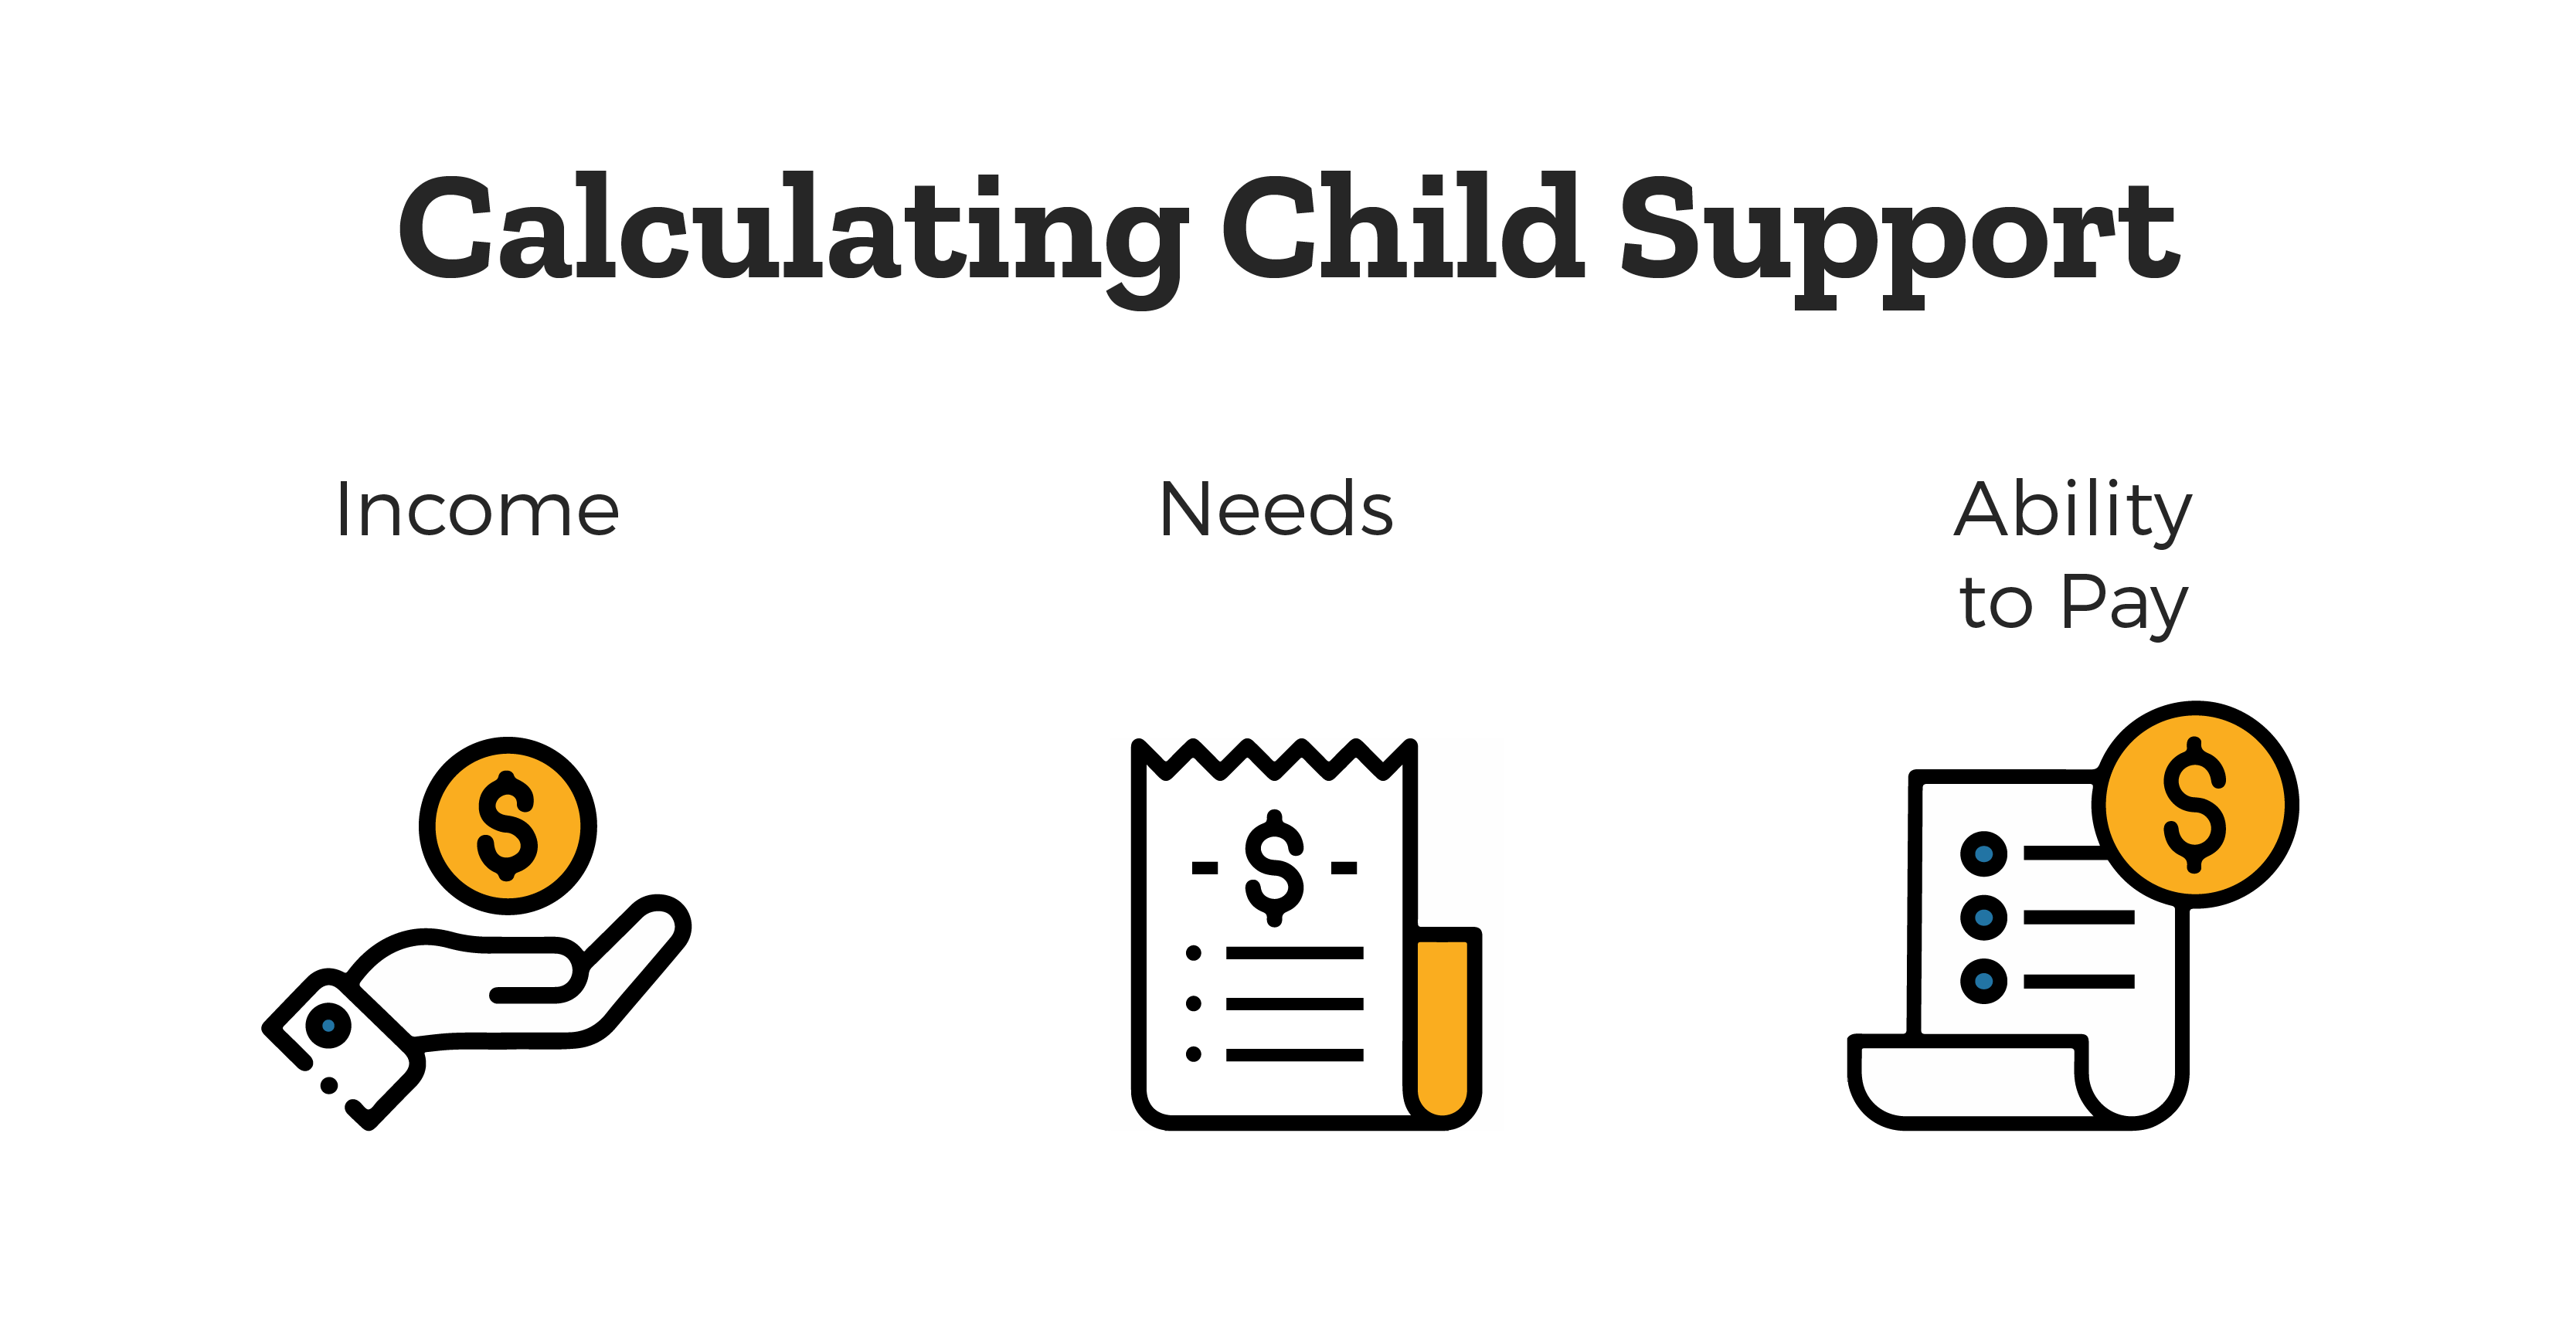 Calculating Child Support - a graphic showing the amount is determined by income, needs, and ability to pay.